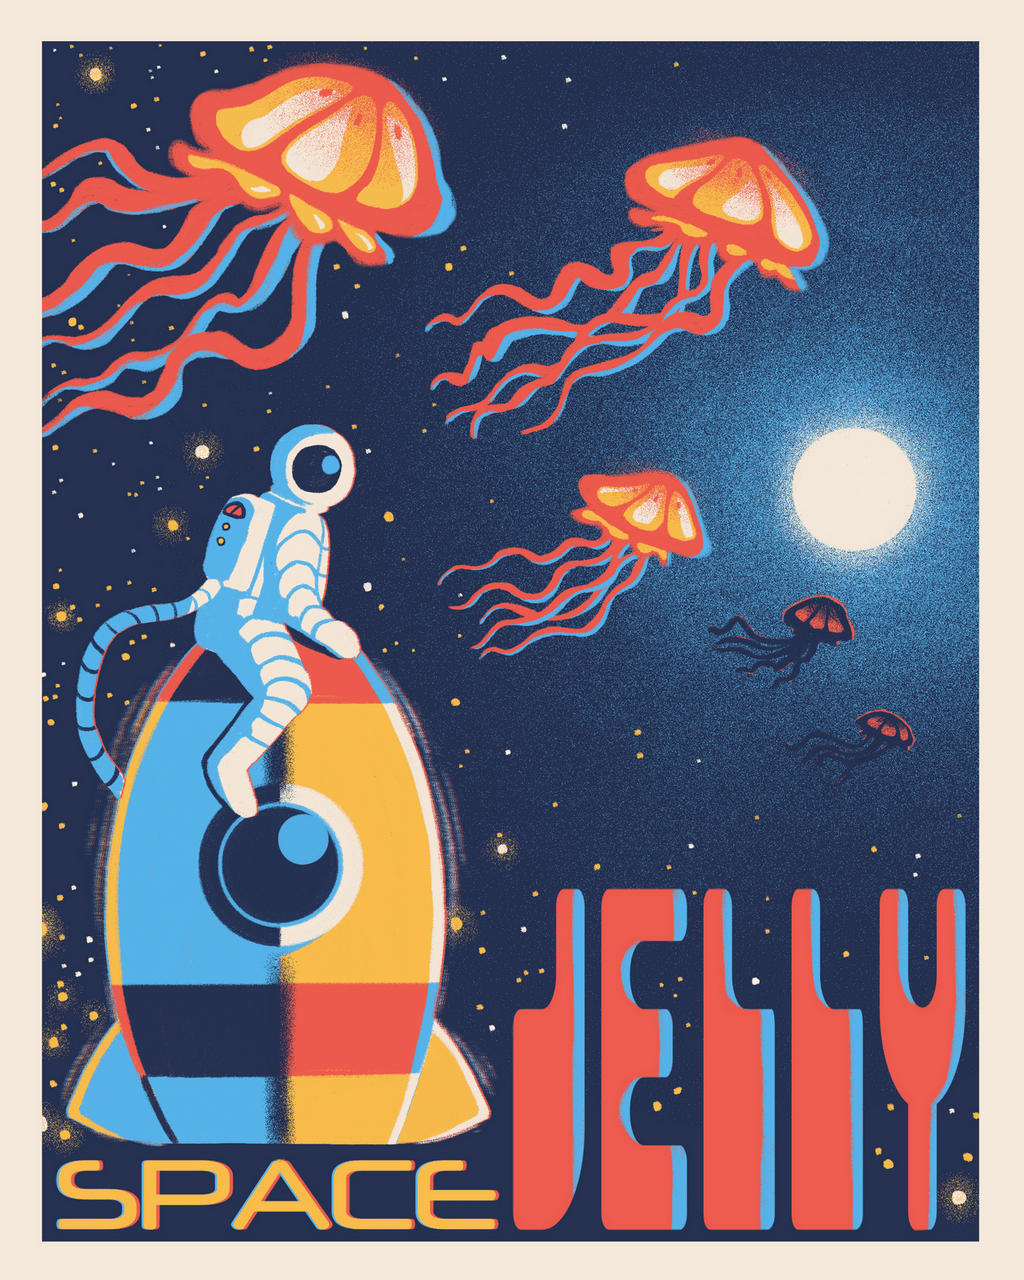 Space jelly